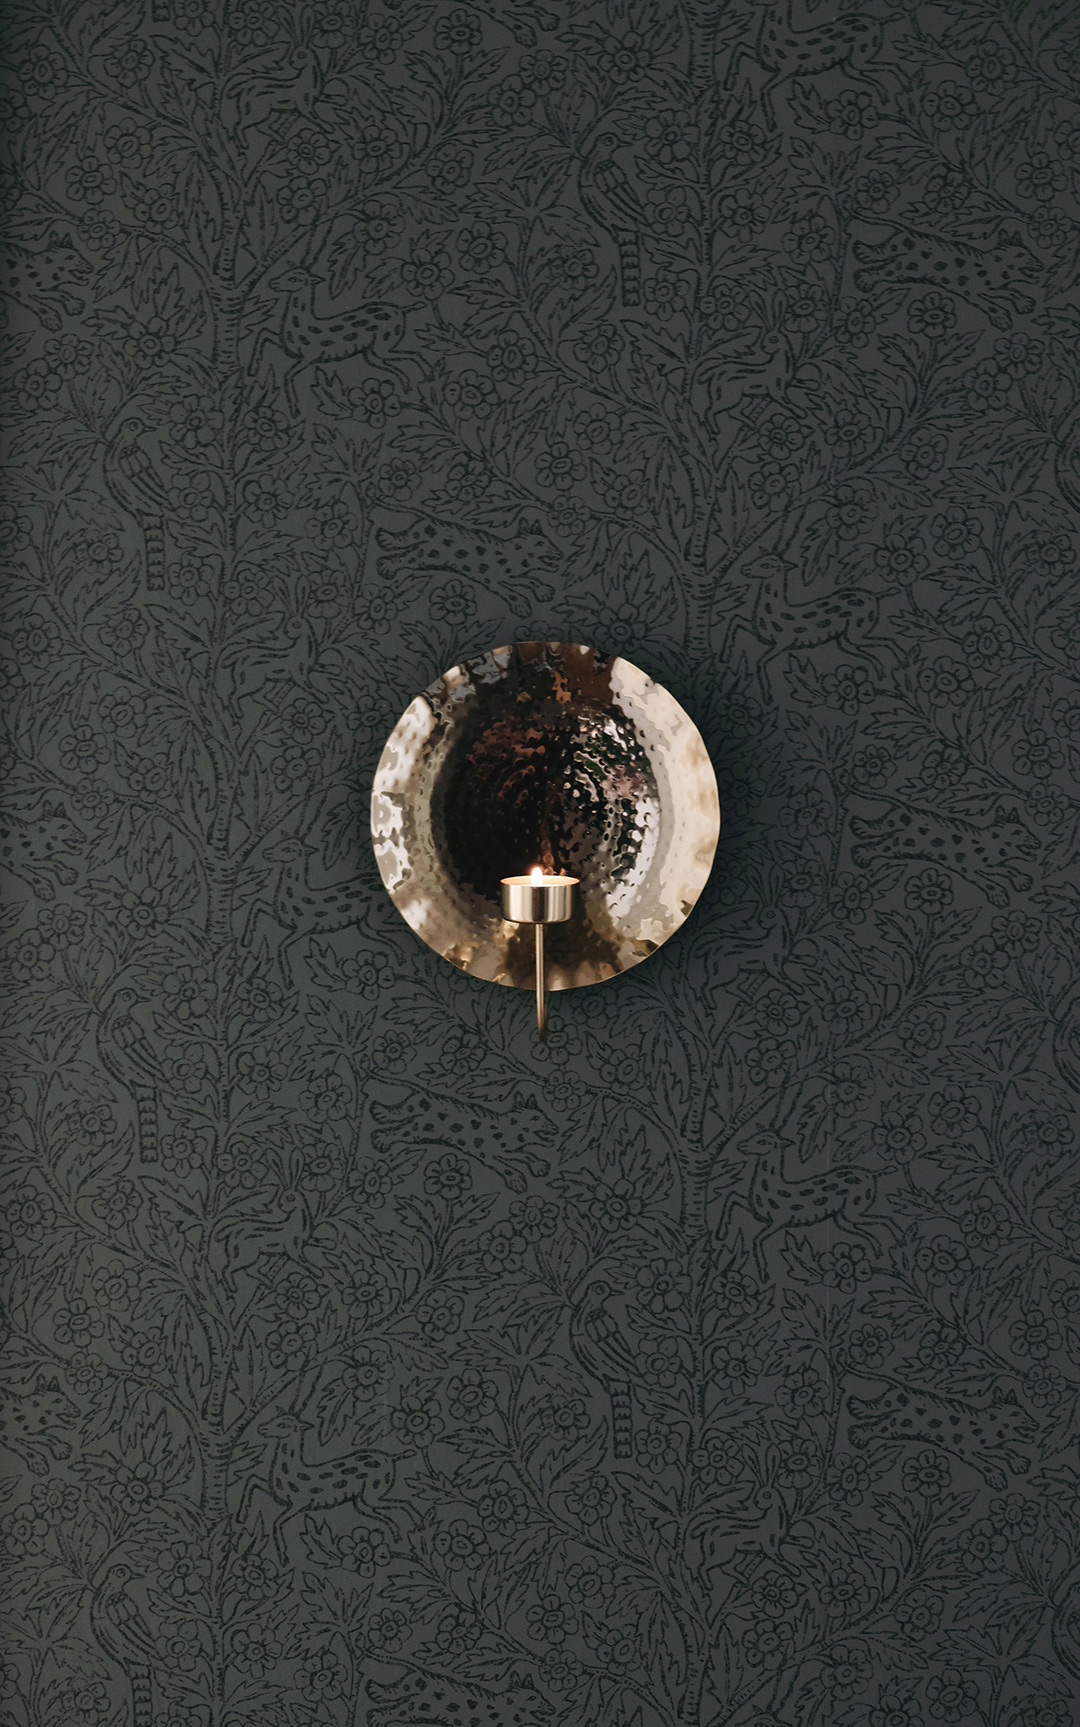 H&M home brass candle sconce on dark green wallpaper